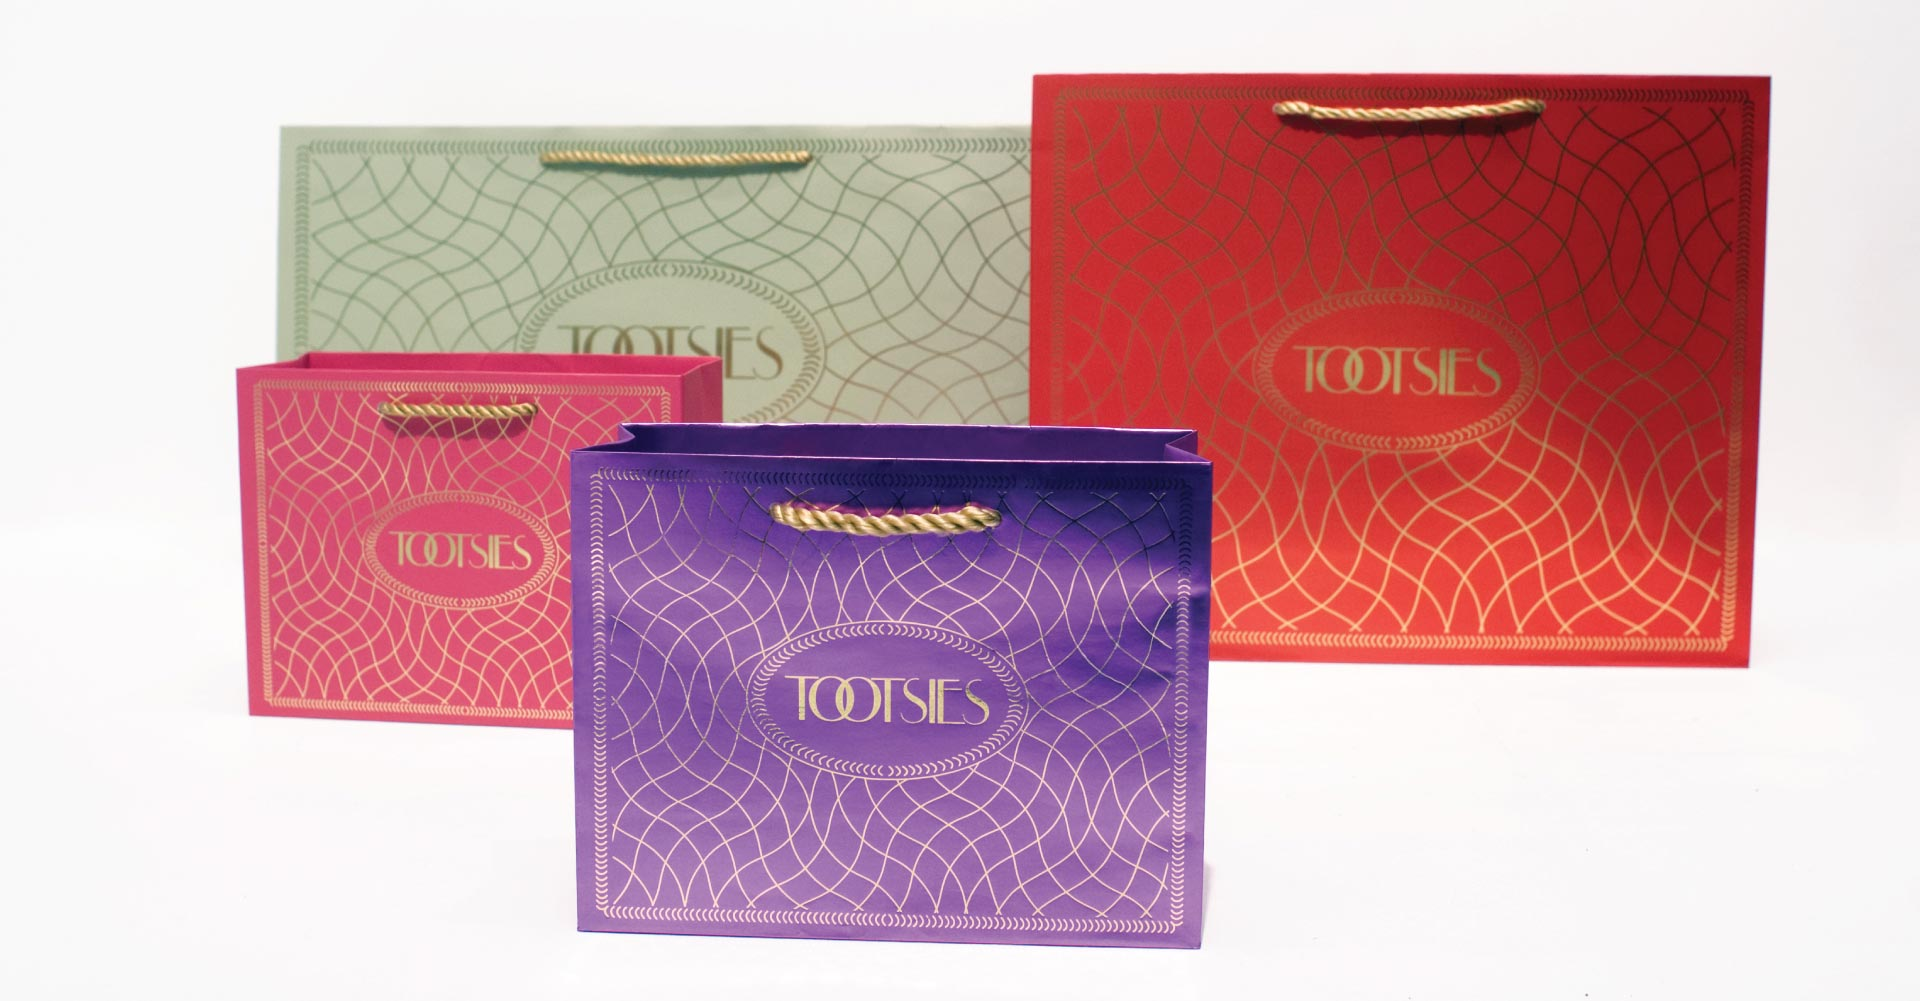 Creative_Retail_Packaging_Custom_Luxury_Tootsies_08.jpg